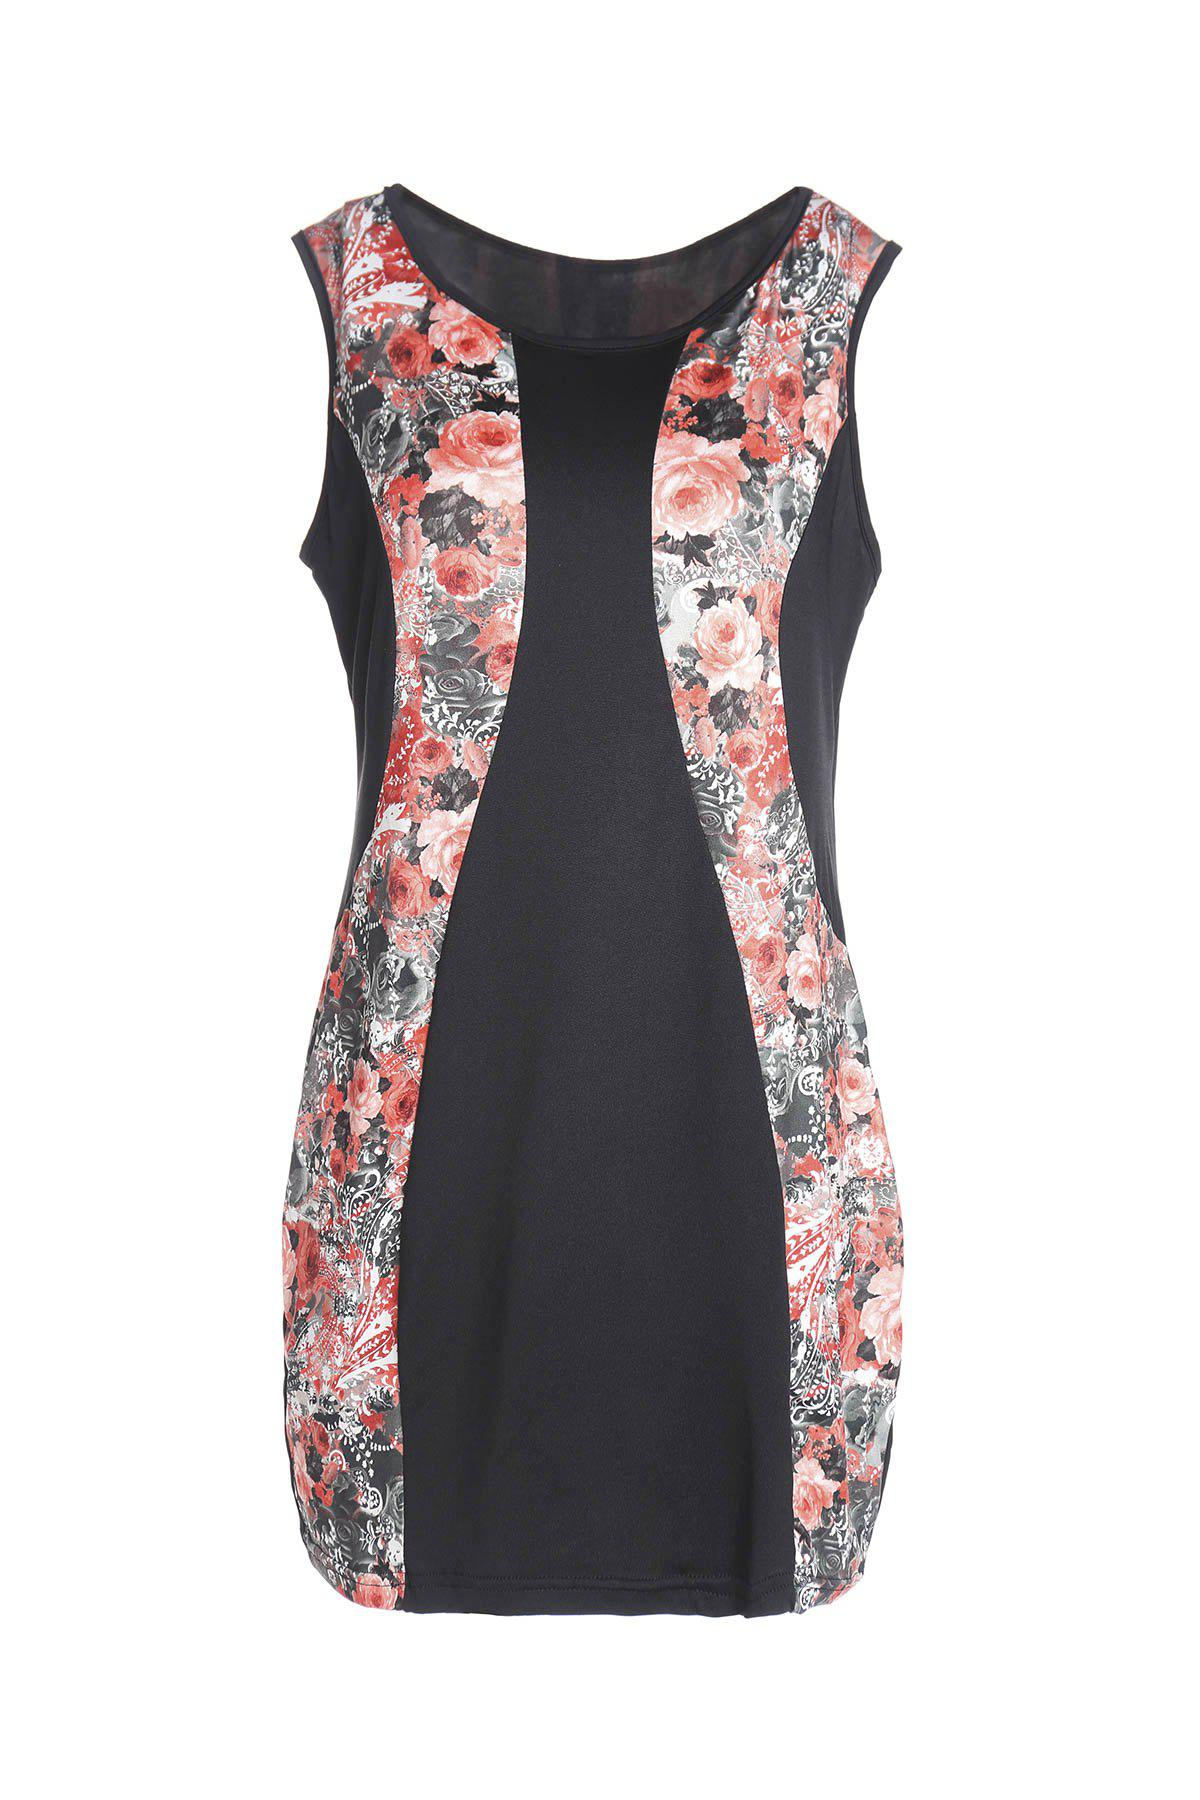 Charming Red Floral Print Sleeveless Bodycon Mini Dress For Women - RED 2XL